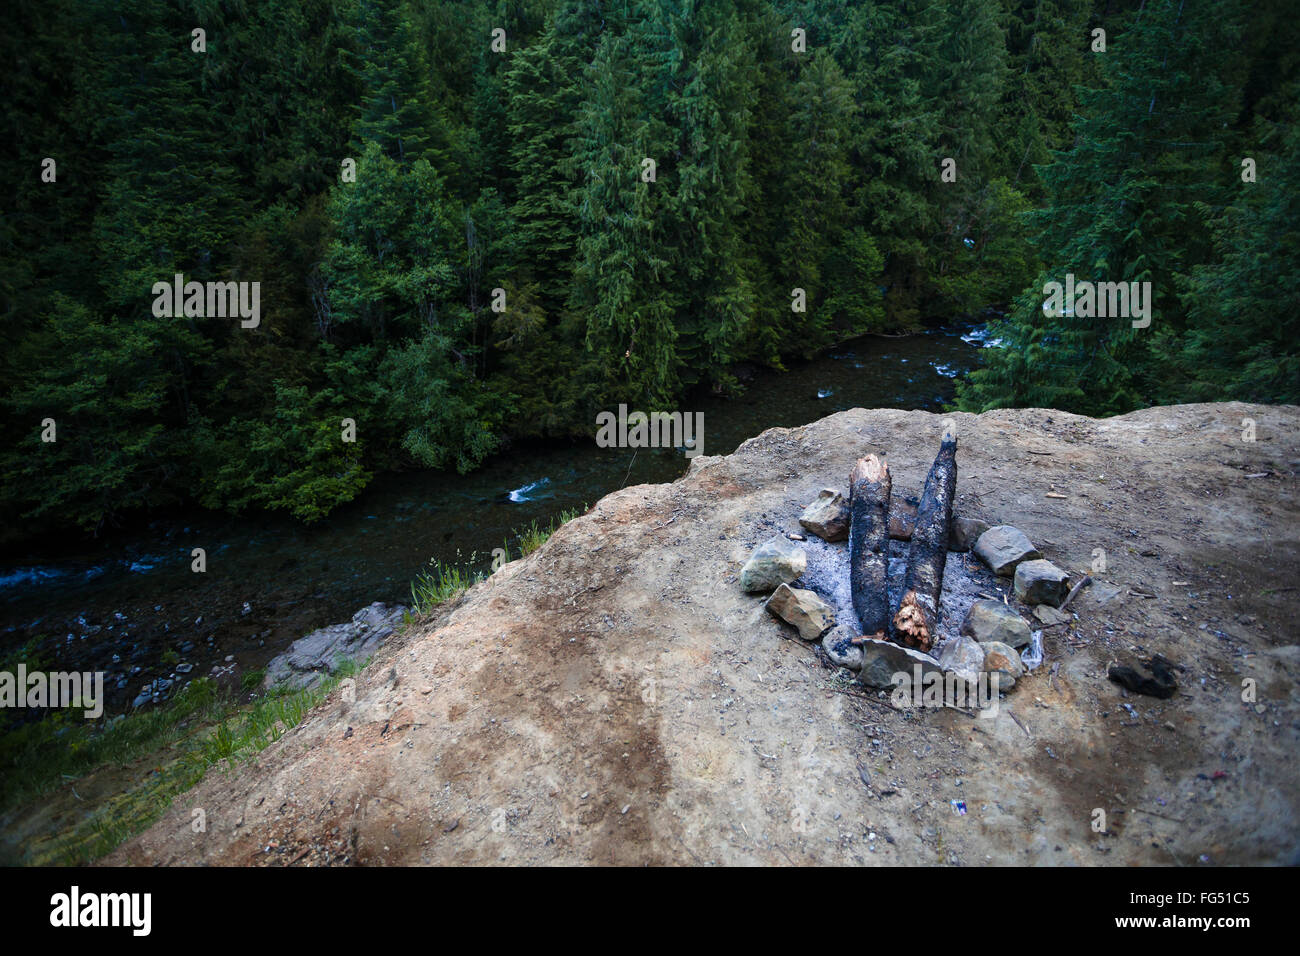 Campfire location along the North Umpqua River in the national forest. - Stock Image